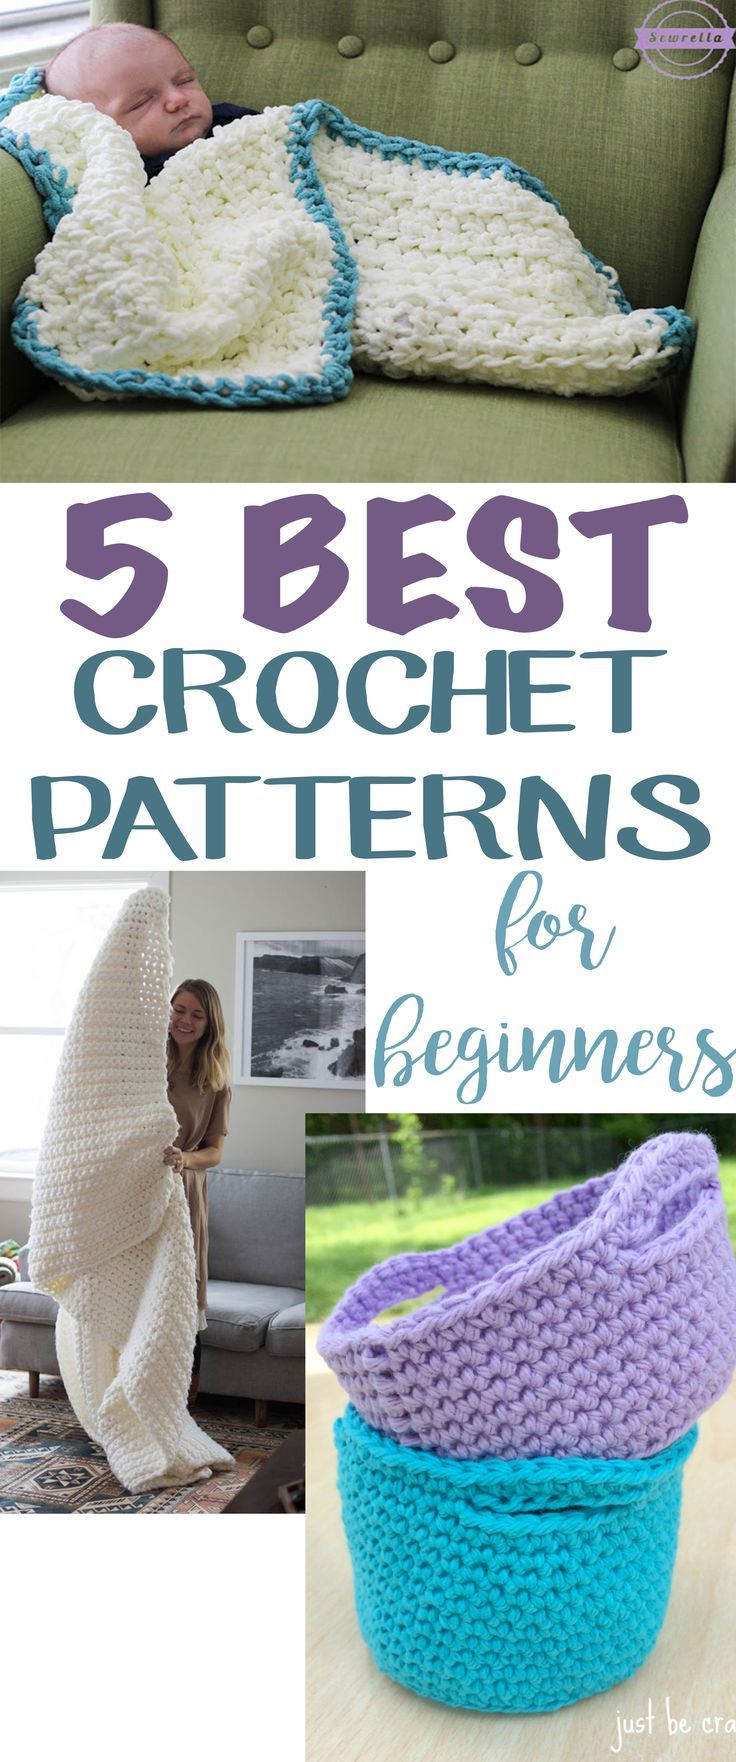 5 Best Easy Crochet Patterns for Beginners   Free Pattern Roundup from Sewrella